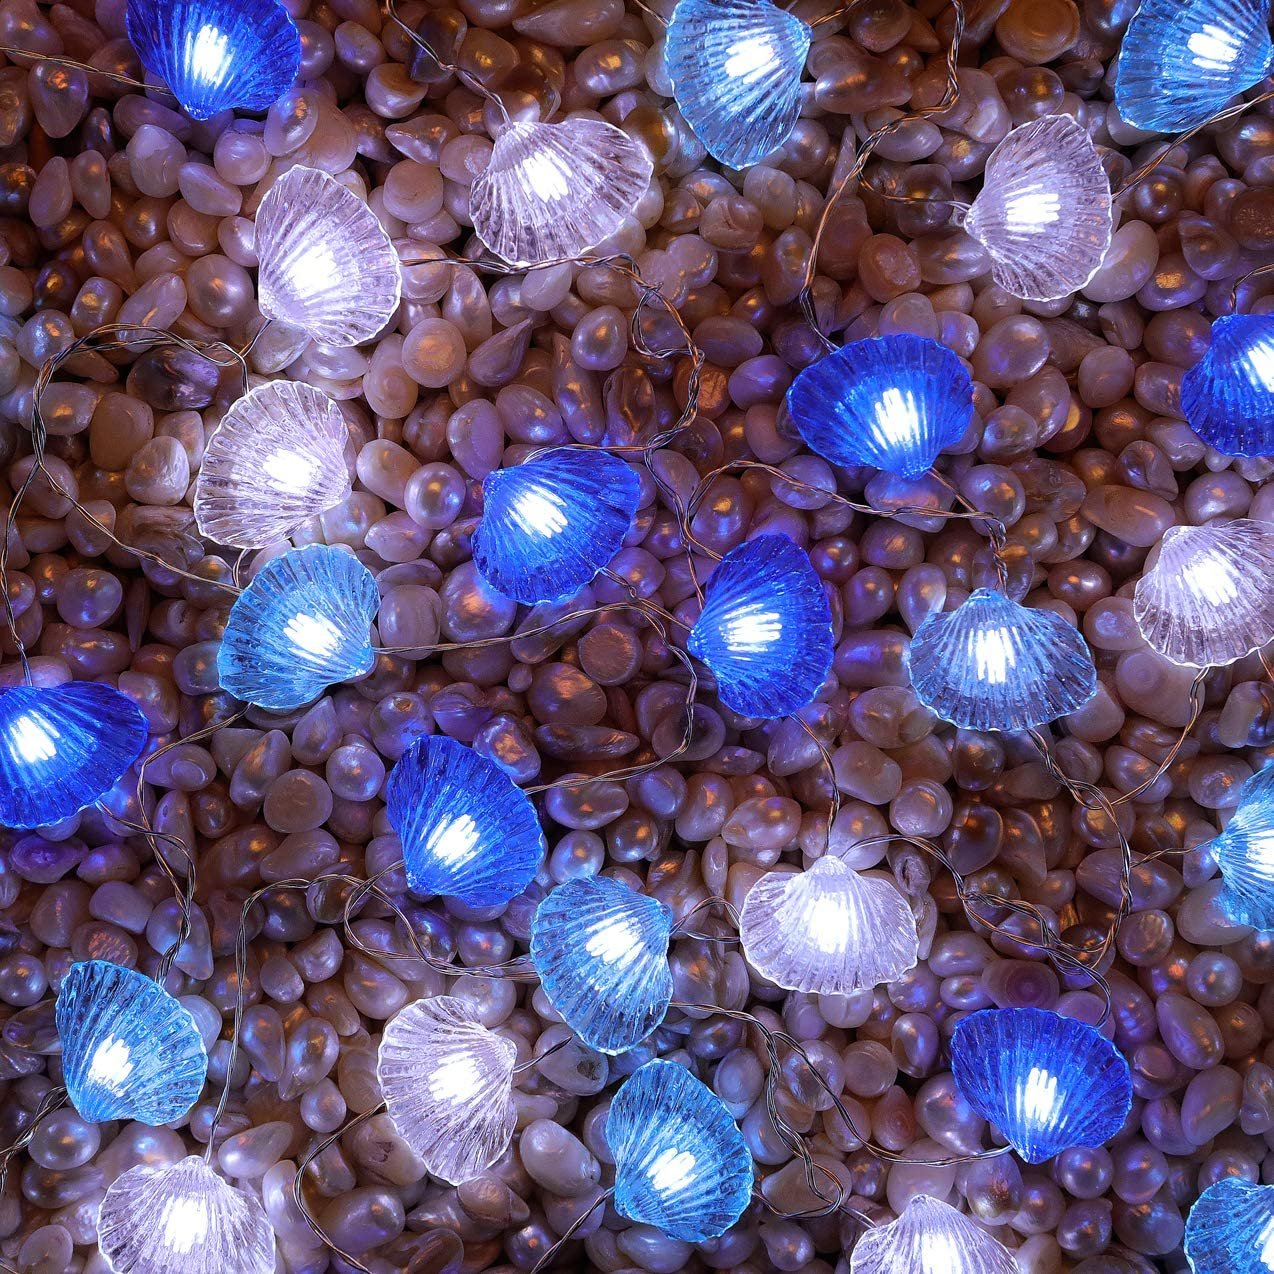 SFgift Seashell 40 LED String Lights 13.5ft Battery Operated Waterproof Cold White with Remote Control and Timer for Wedding Nursery Bedroom Party Birthday Ornament